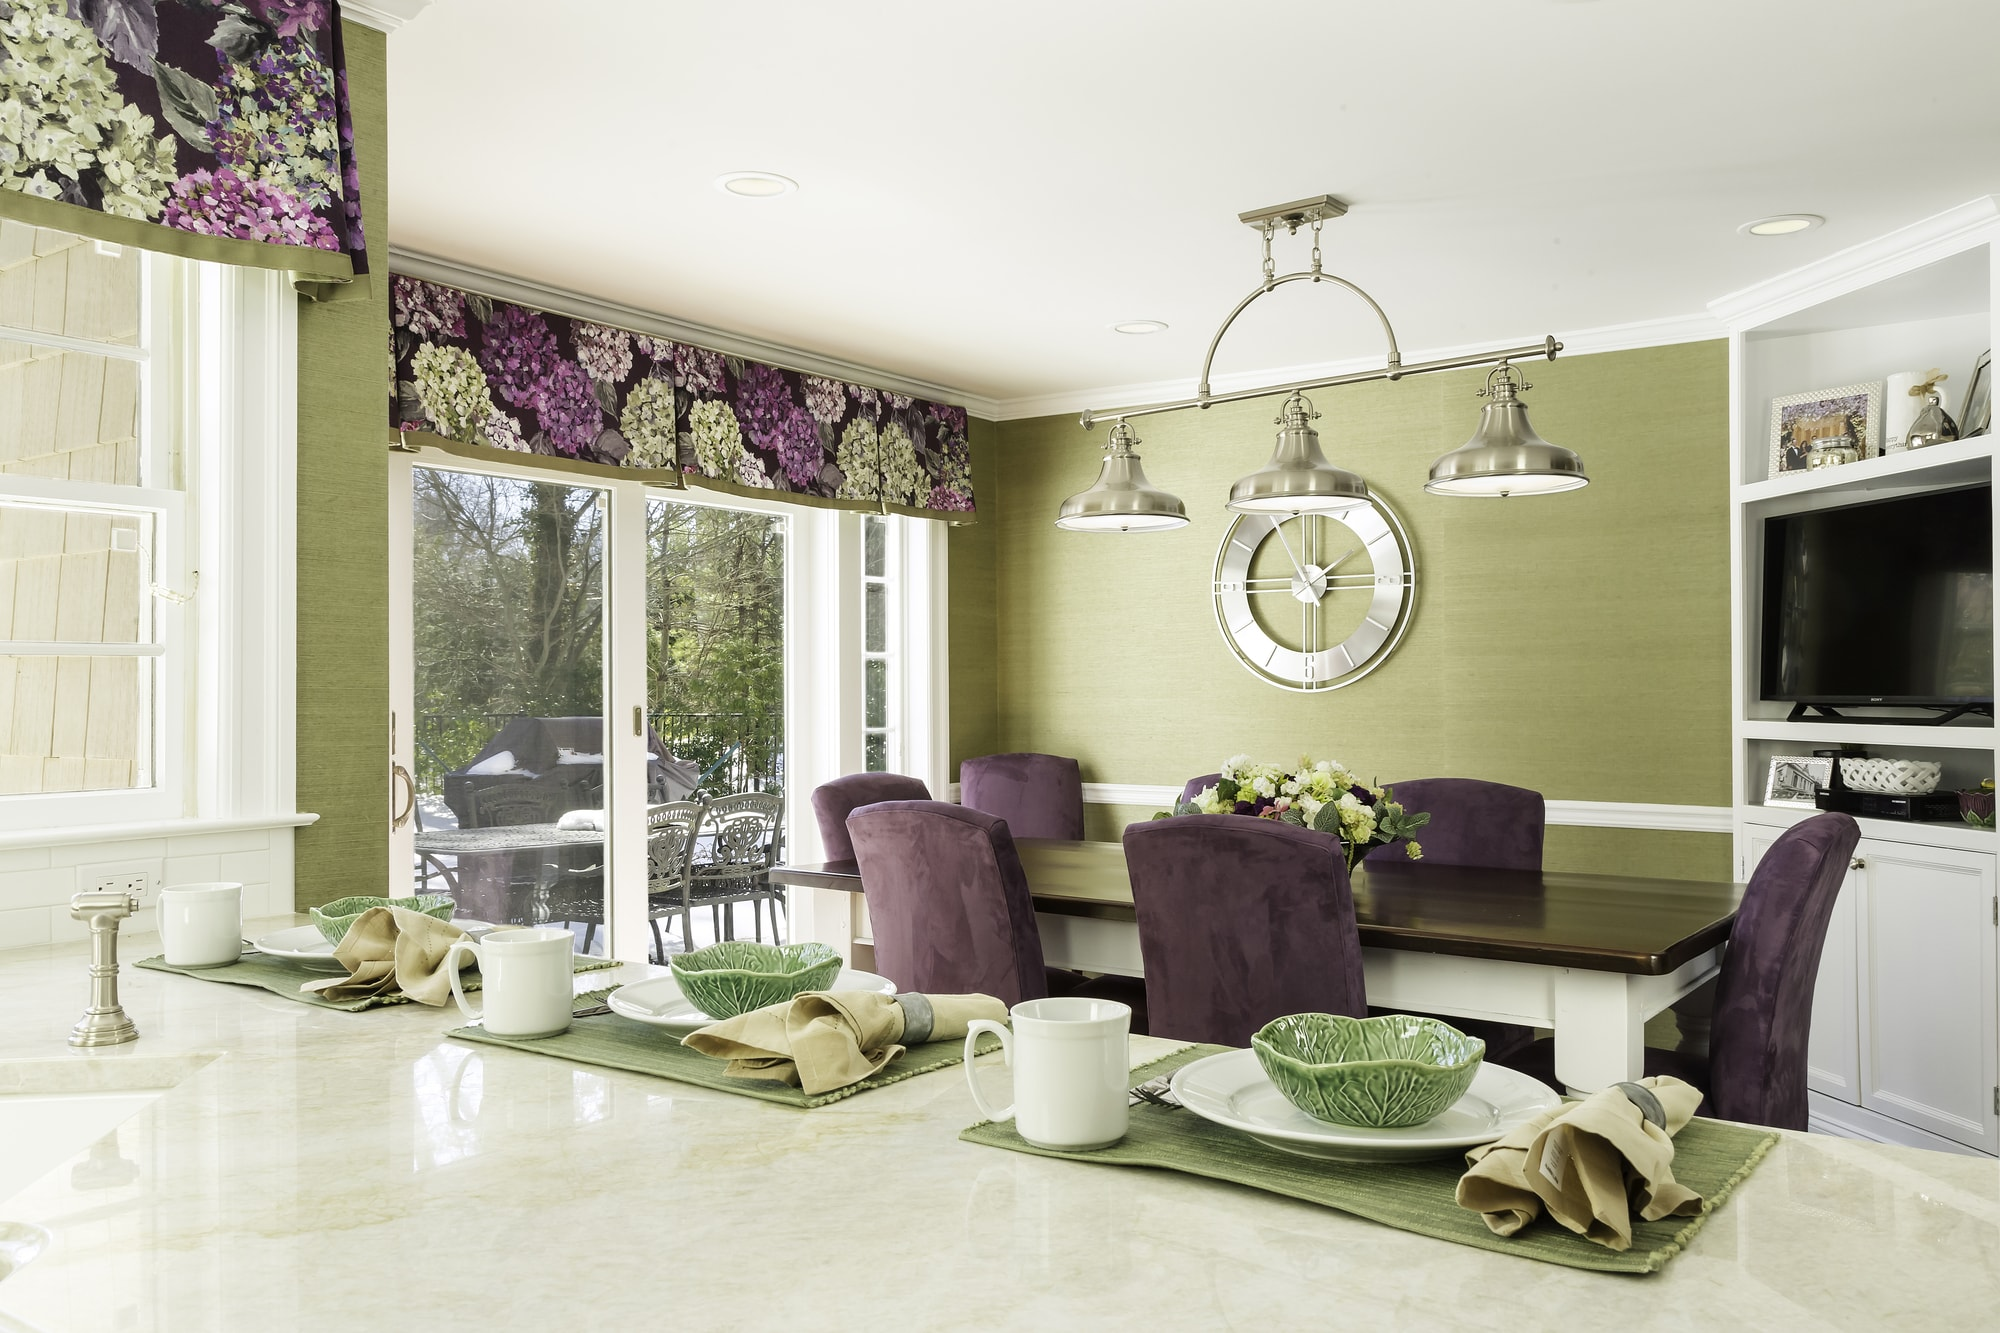 Transitional style kitchen with eating area